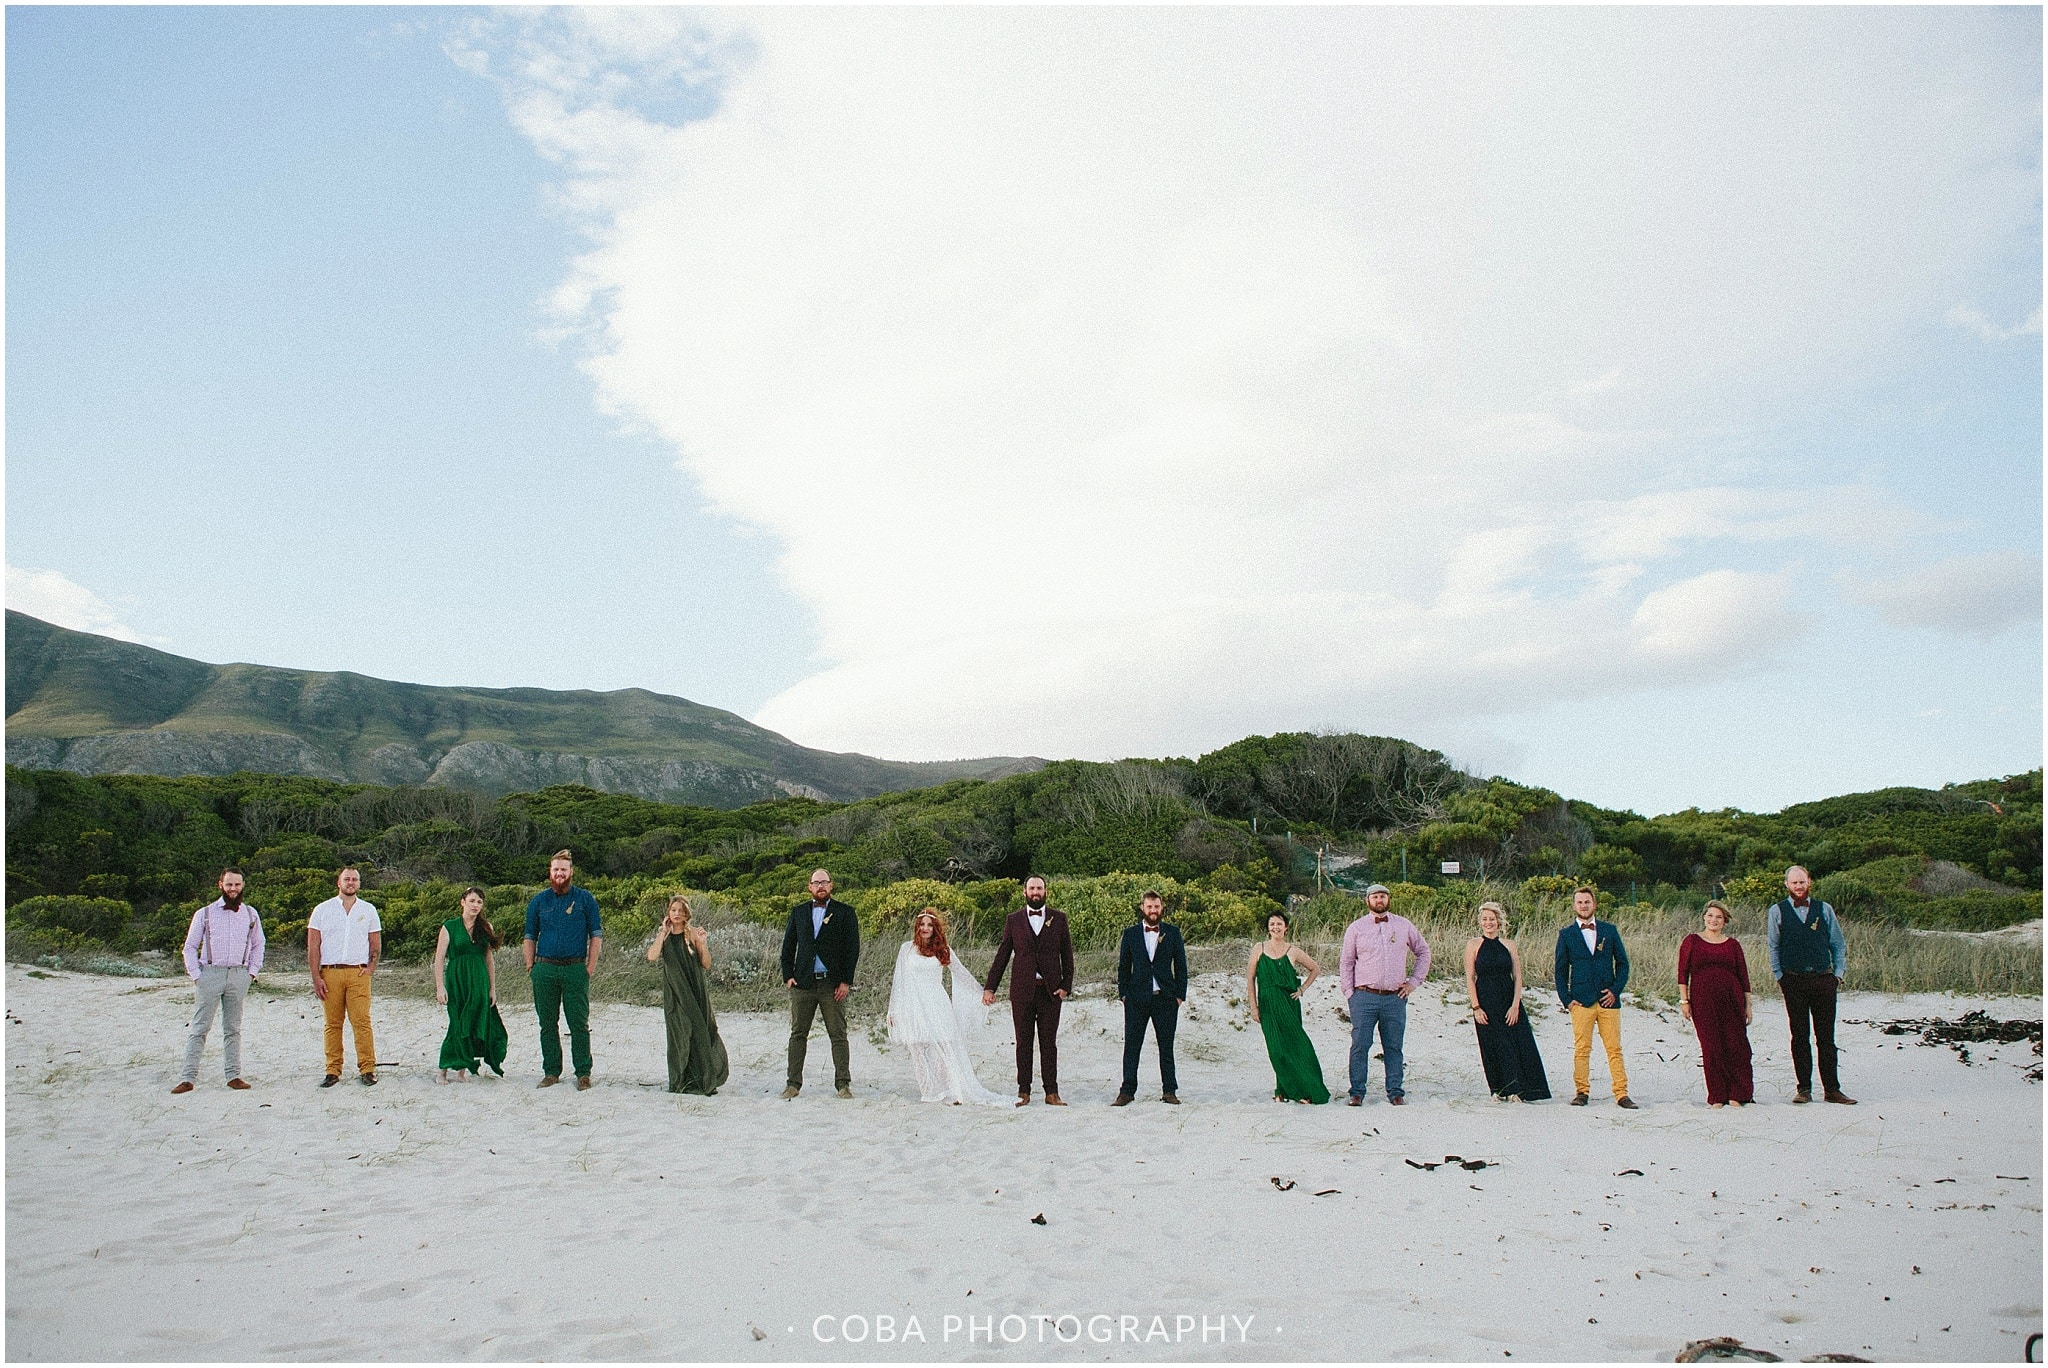 Conrad & Mareli - Bohemian beach wedding - (1)